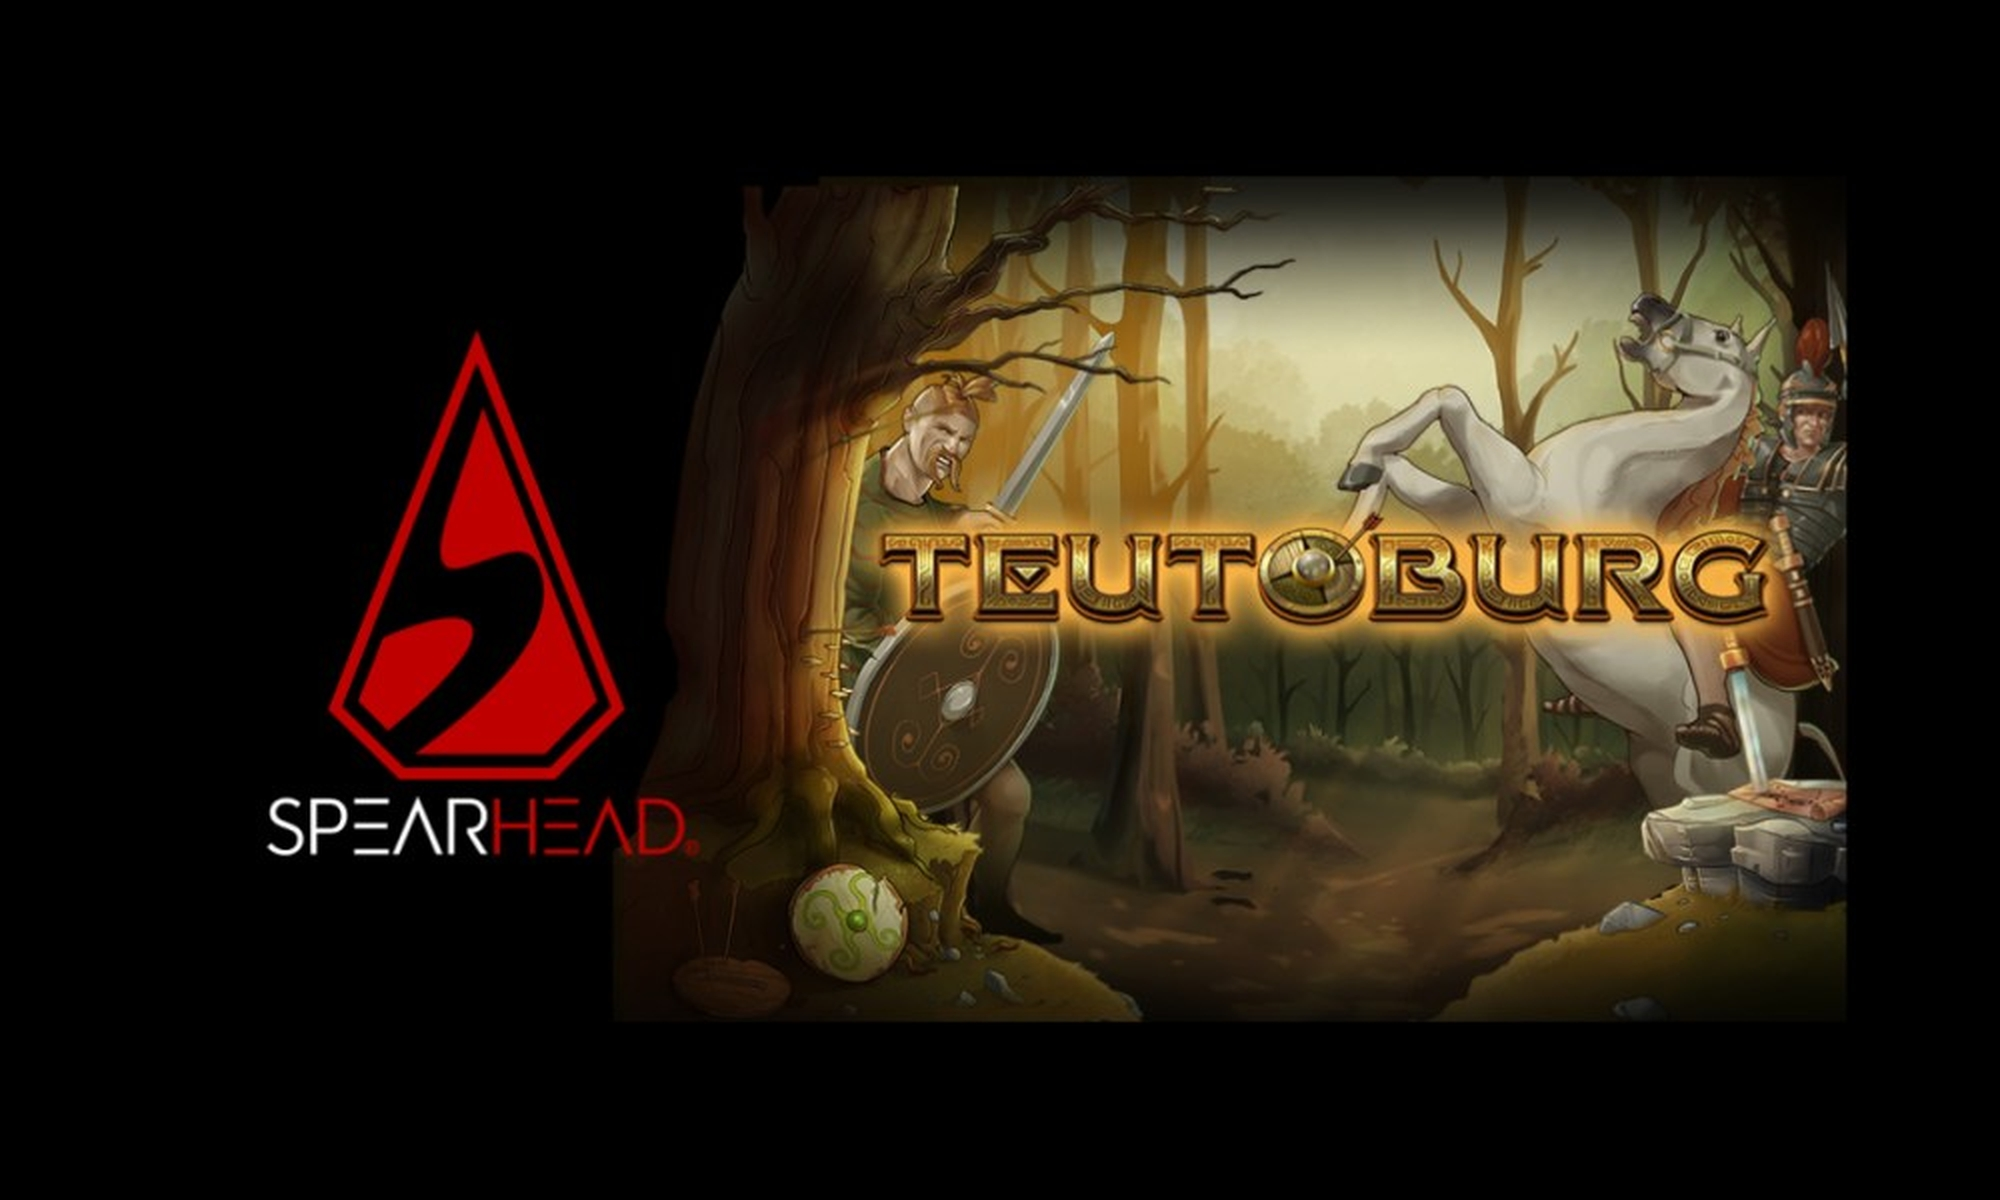 The Teutoburg Online Slot Demo Game by Spearhead Studios